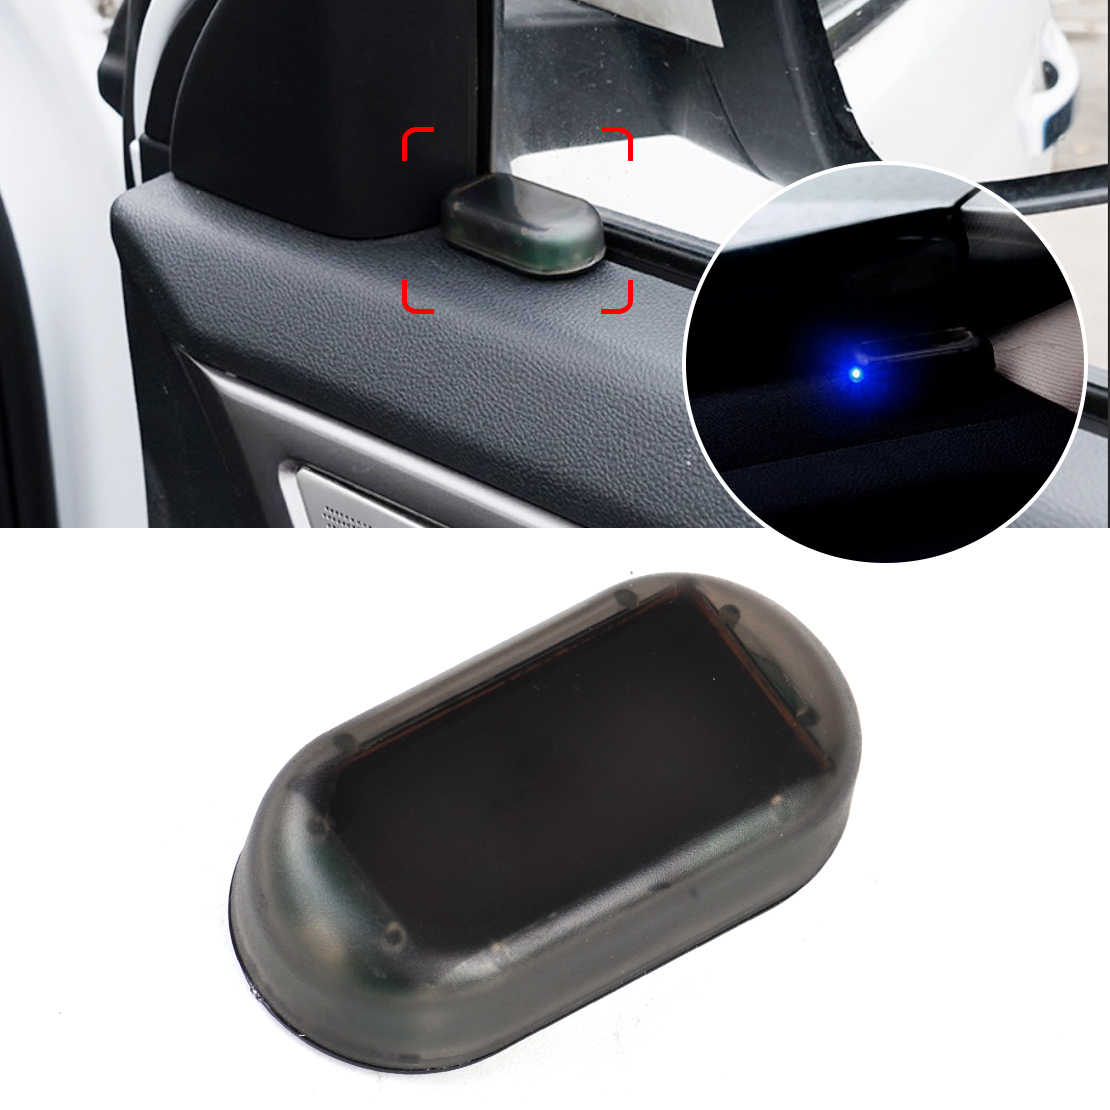 Detail Feedback Questions About Dwcx Car Blue Led Solar Simulated Fake Dummy Alarm Warning Security Anti Theft Flashing Light For Vw Audi Bmw Peugeot